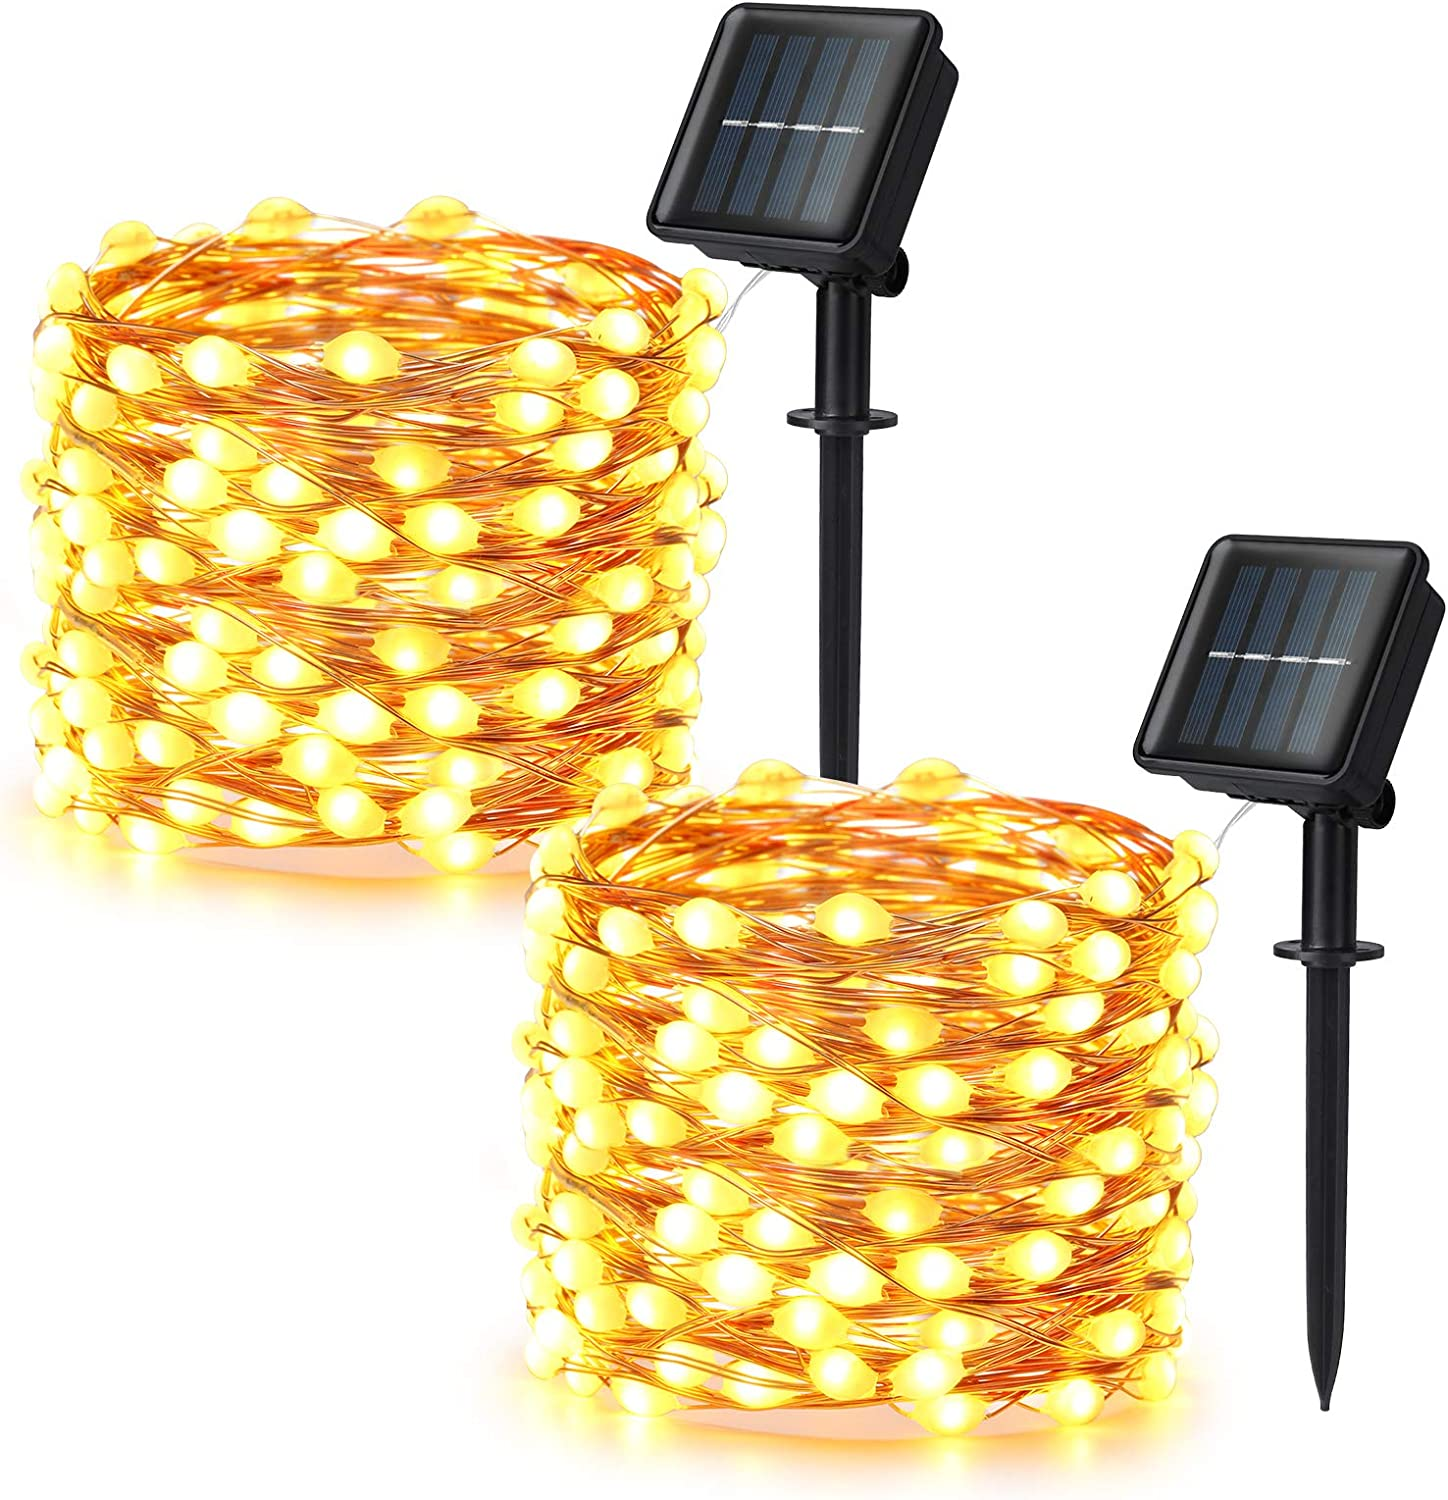 Brizled Solar String Lights, 2 Pack 33ft 100 LED Super Bright Solar Fairy Lights Outdoor, Mini Solar Lights String Waterproof, 8 Modes Solar Copper Wire Lights for Garden Wedding Party, Warm White